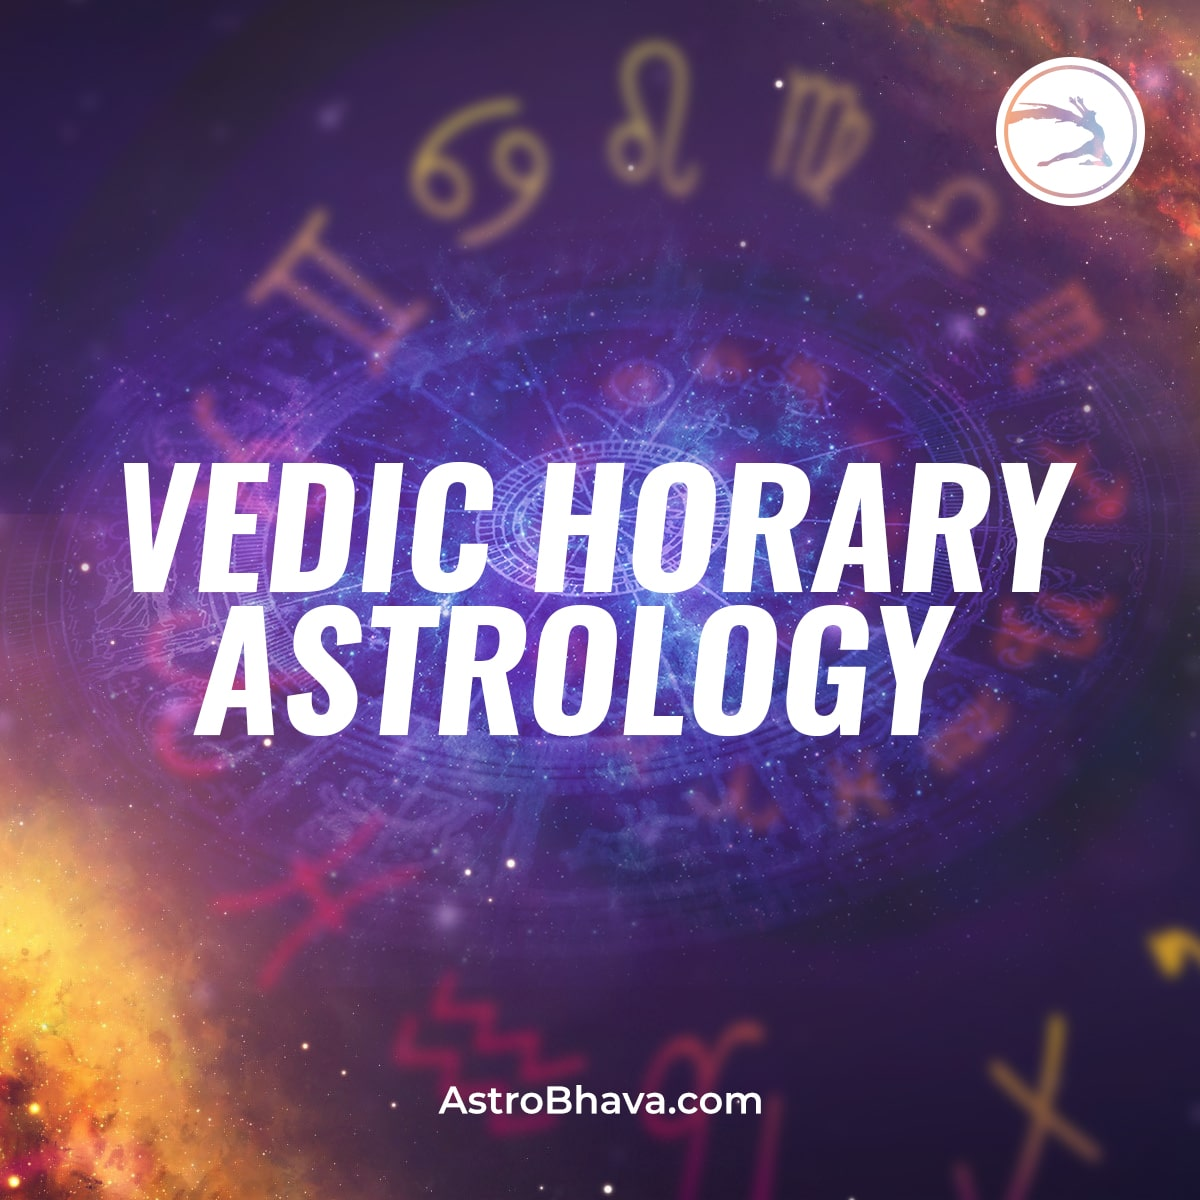 All Facts About Ancient Indian Vedic Astrology by AstroBhava